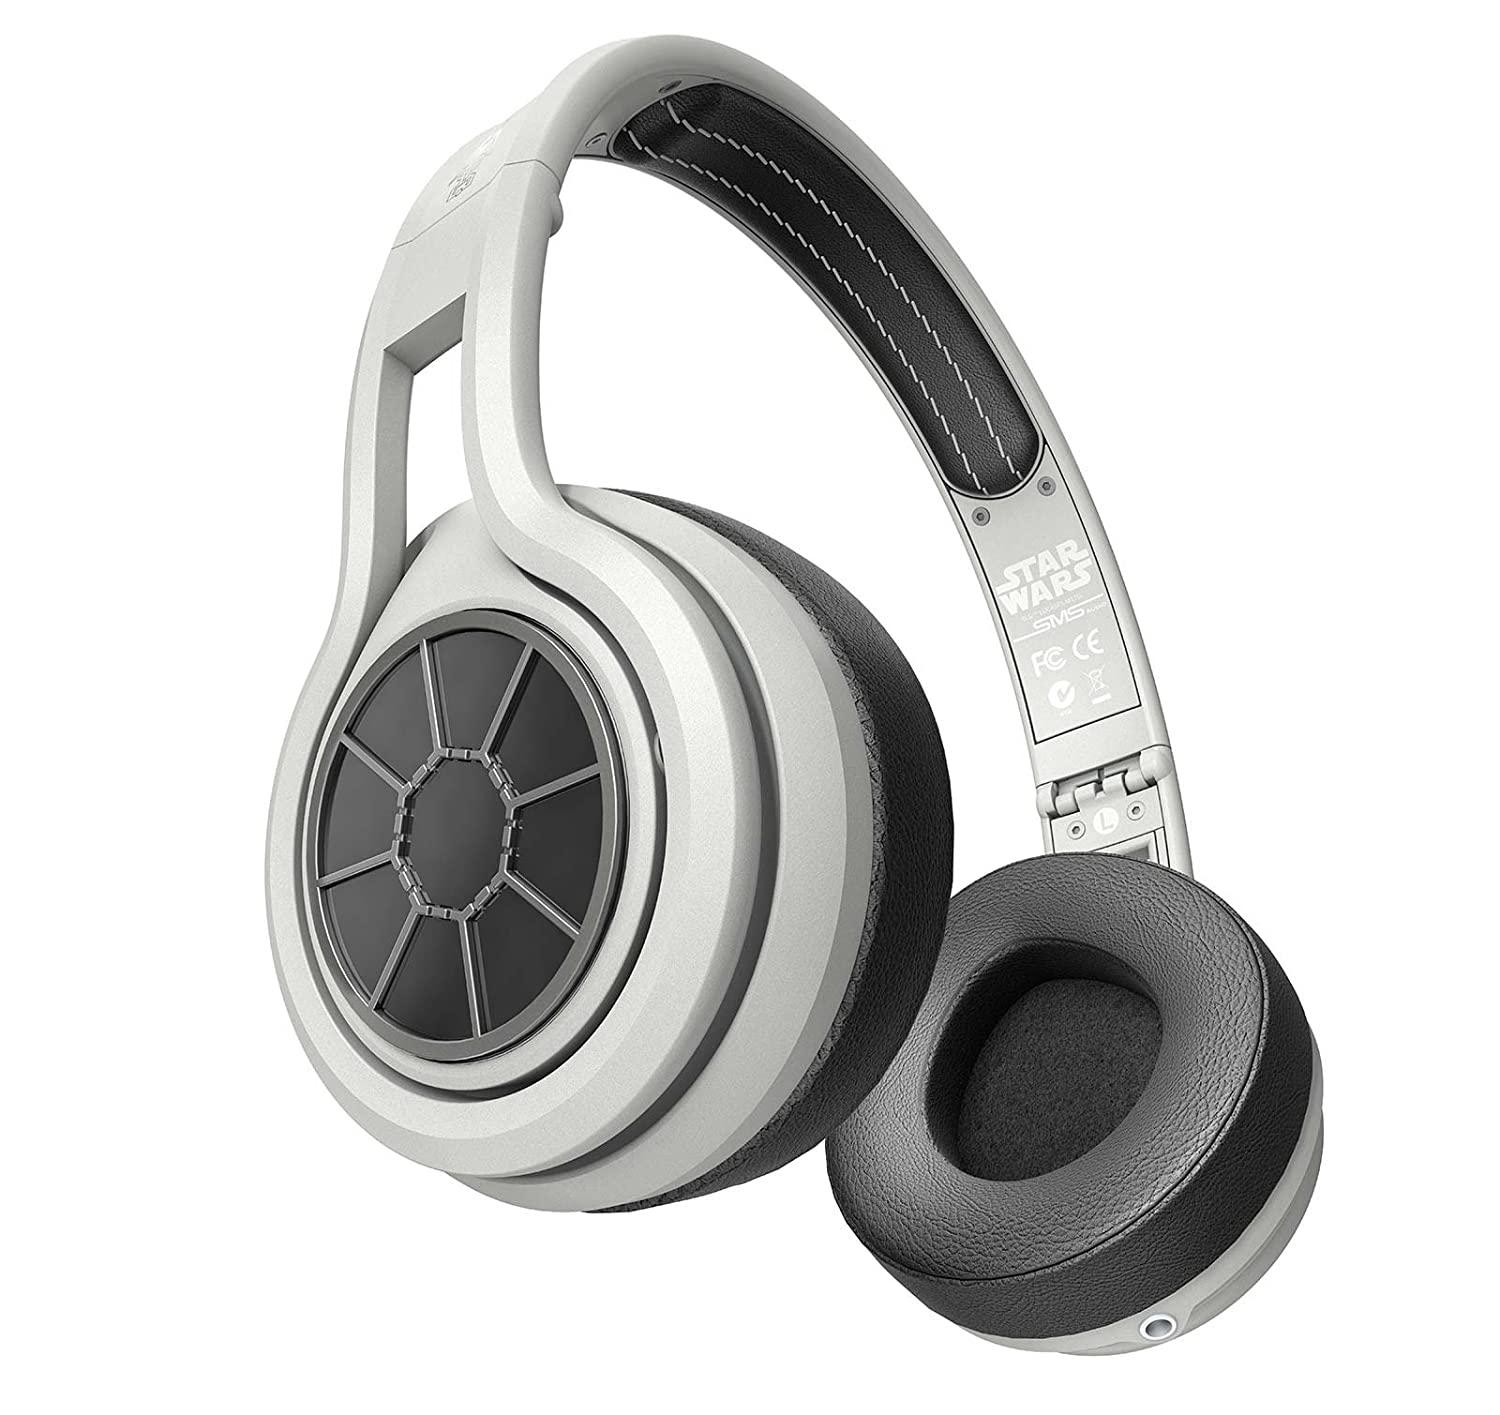 Amazon.com: SMS Street by 50 Star Wars 2nd Edition Headphones (Tie ...